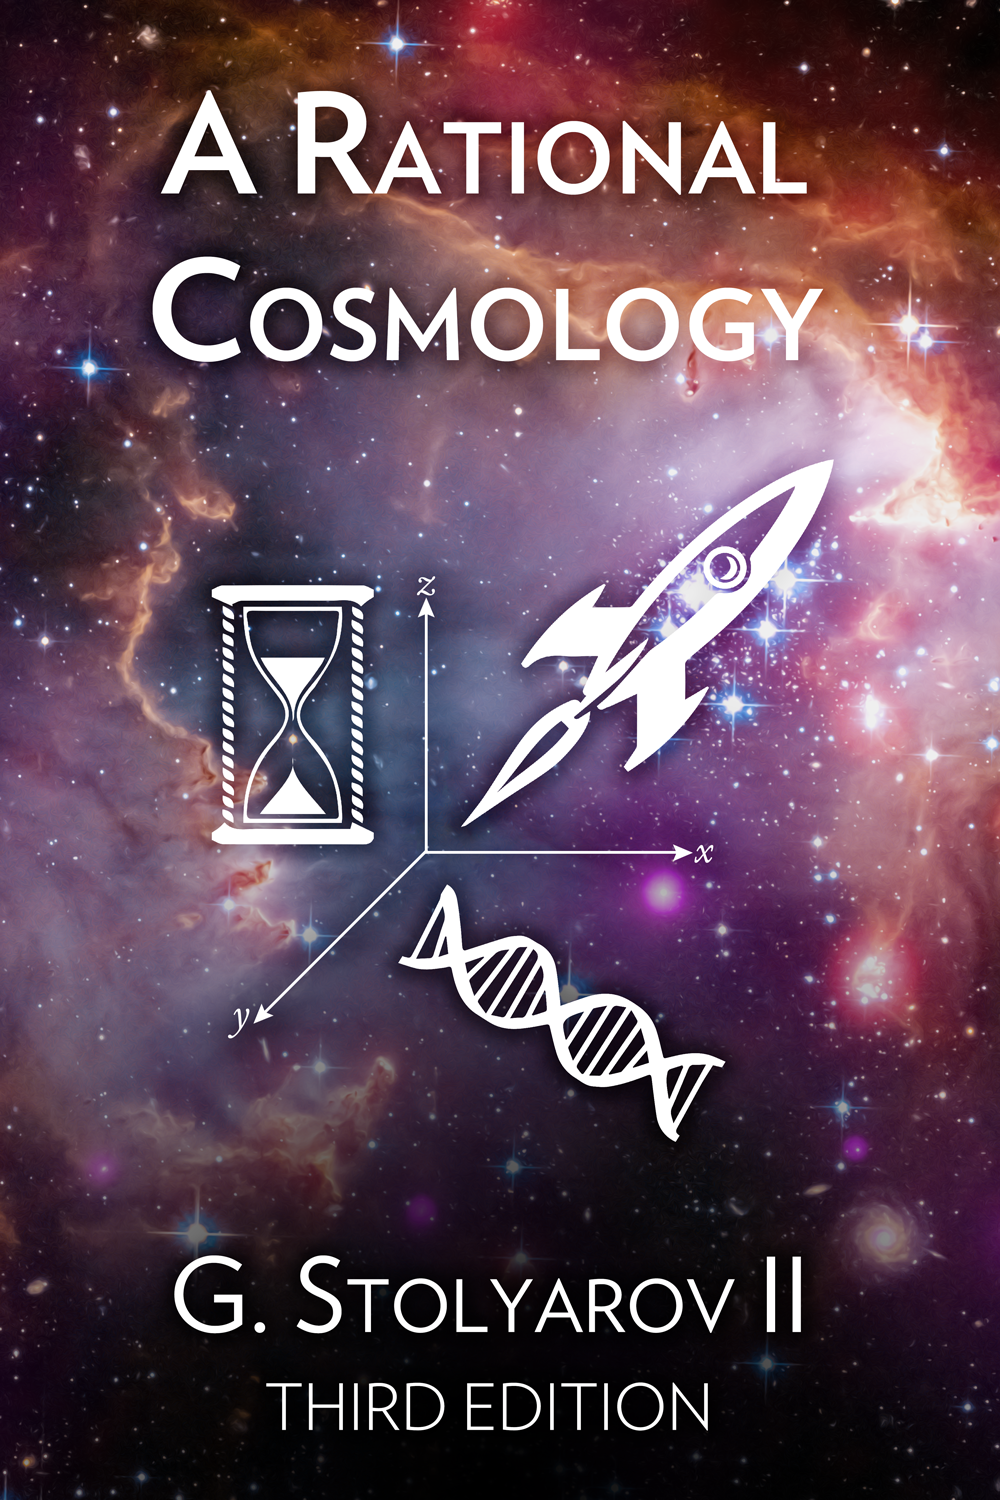 A Rational Cosmology - Third Edition - by G. Stolyarov II